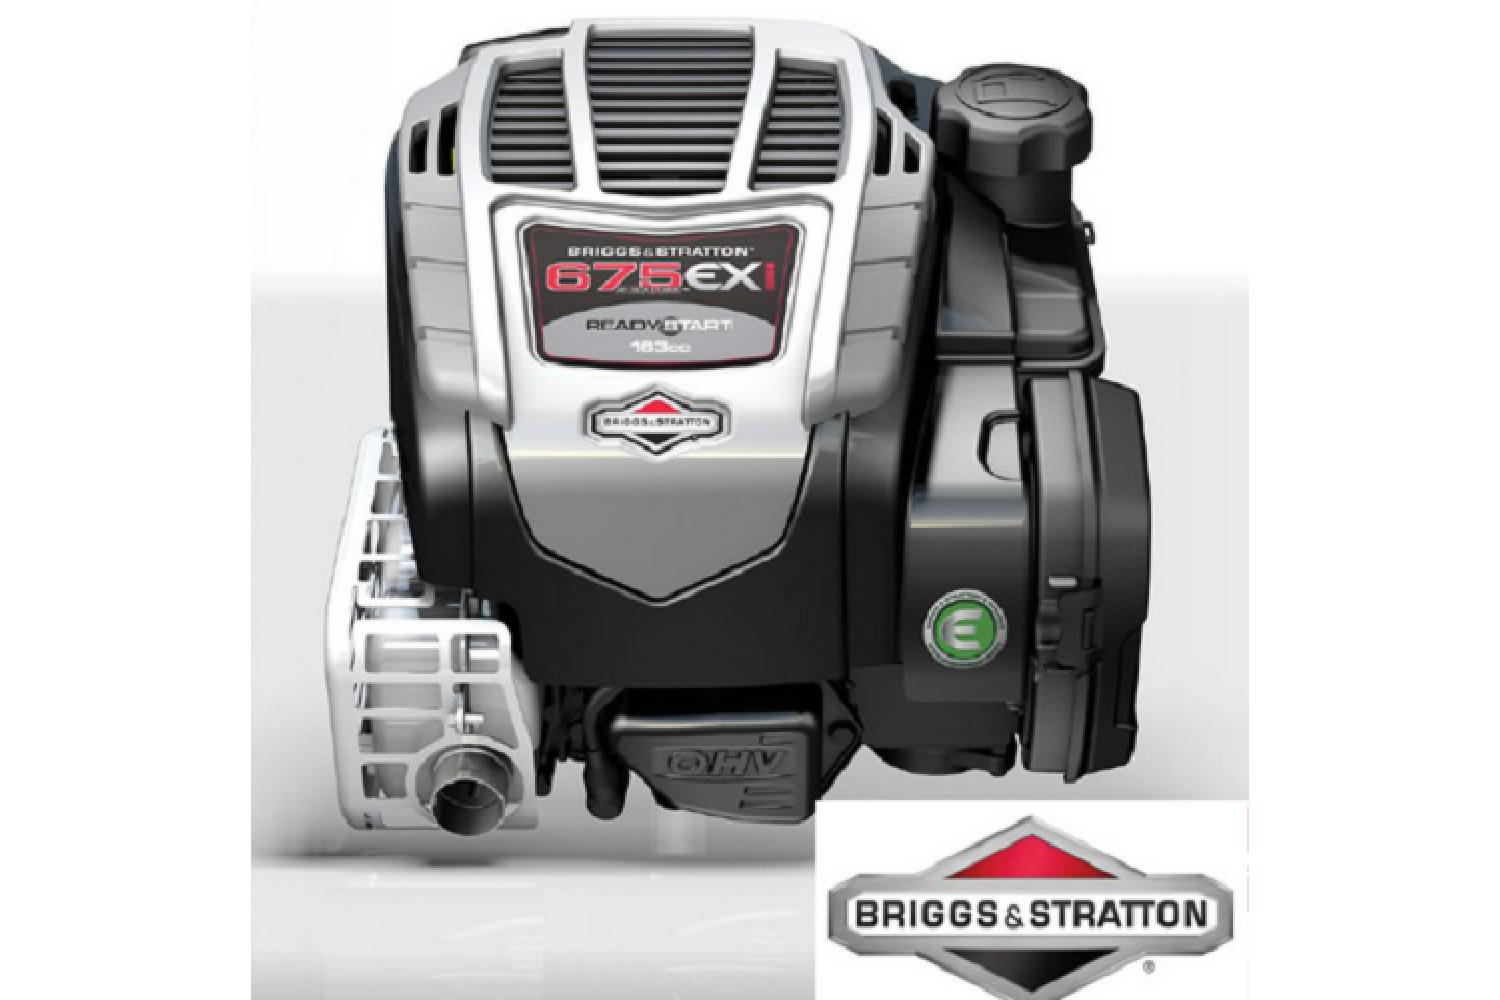 motor briggs stratton 675exi 5 5hp 163ccm kurbelwelle d. Black Bedroom Furniture Sets. Home Design Ideas